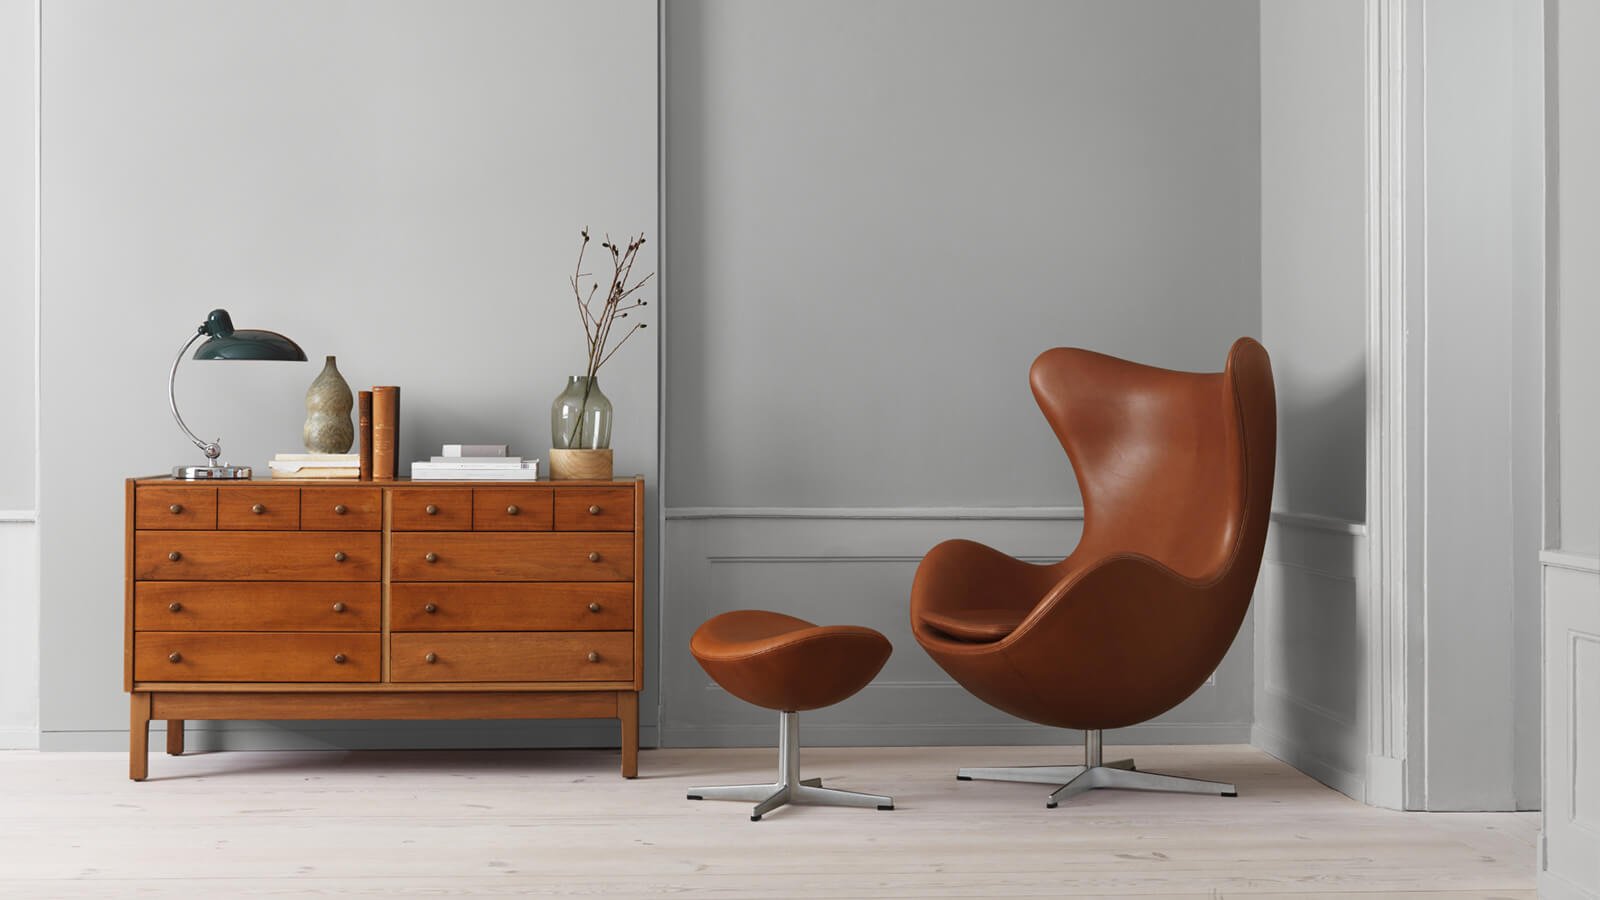 Mid-Century Modern Chairs That'll Change How You See Interior Design mid-century modern chairs Mid-Century Modern Chairs That'll Change How You See Interior Design These Mid Century Modern Chairs Make a Case for Great Home Decor 2